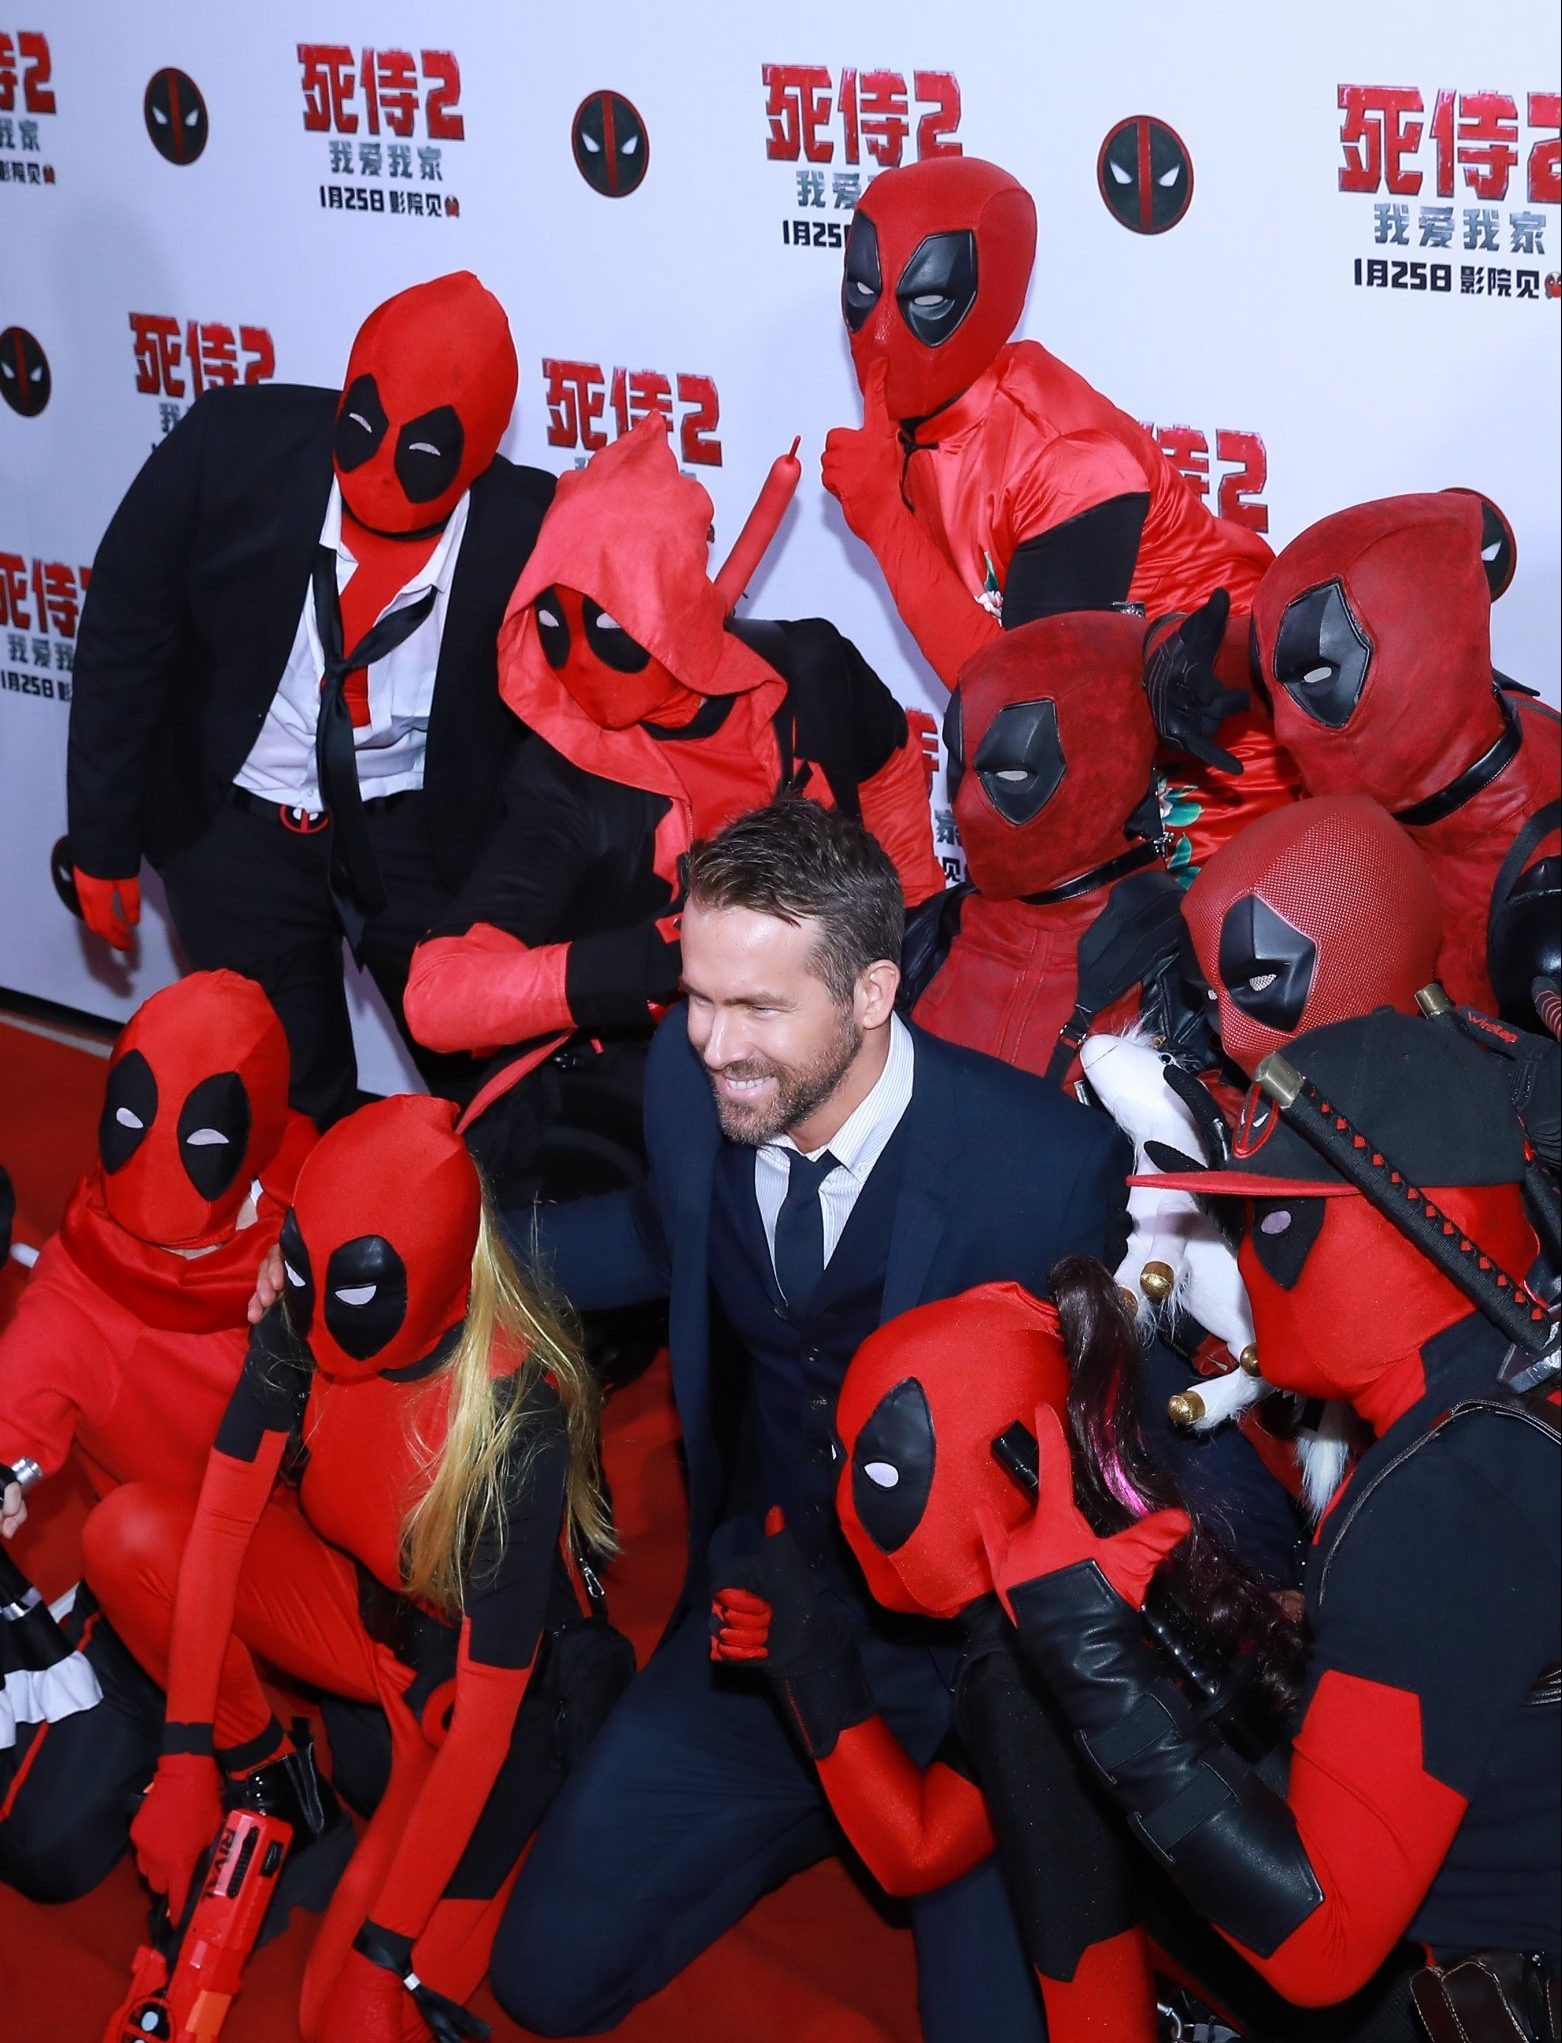 BEIJING, CHINA - JANUARY 20: Actor Ryan Reynolds attends the premiere of 'Deadpool 2' at Park Hyatt Hotel on January 20, 2019 in Beijing, China. (Photo by VCG/VCG via Getty Images)